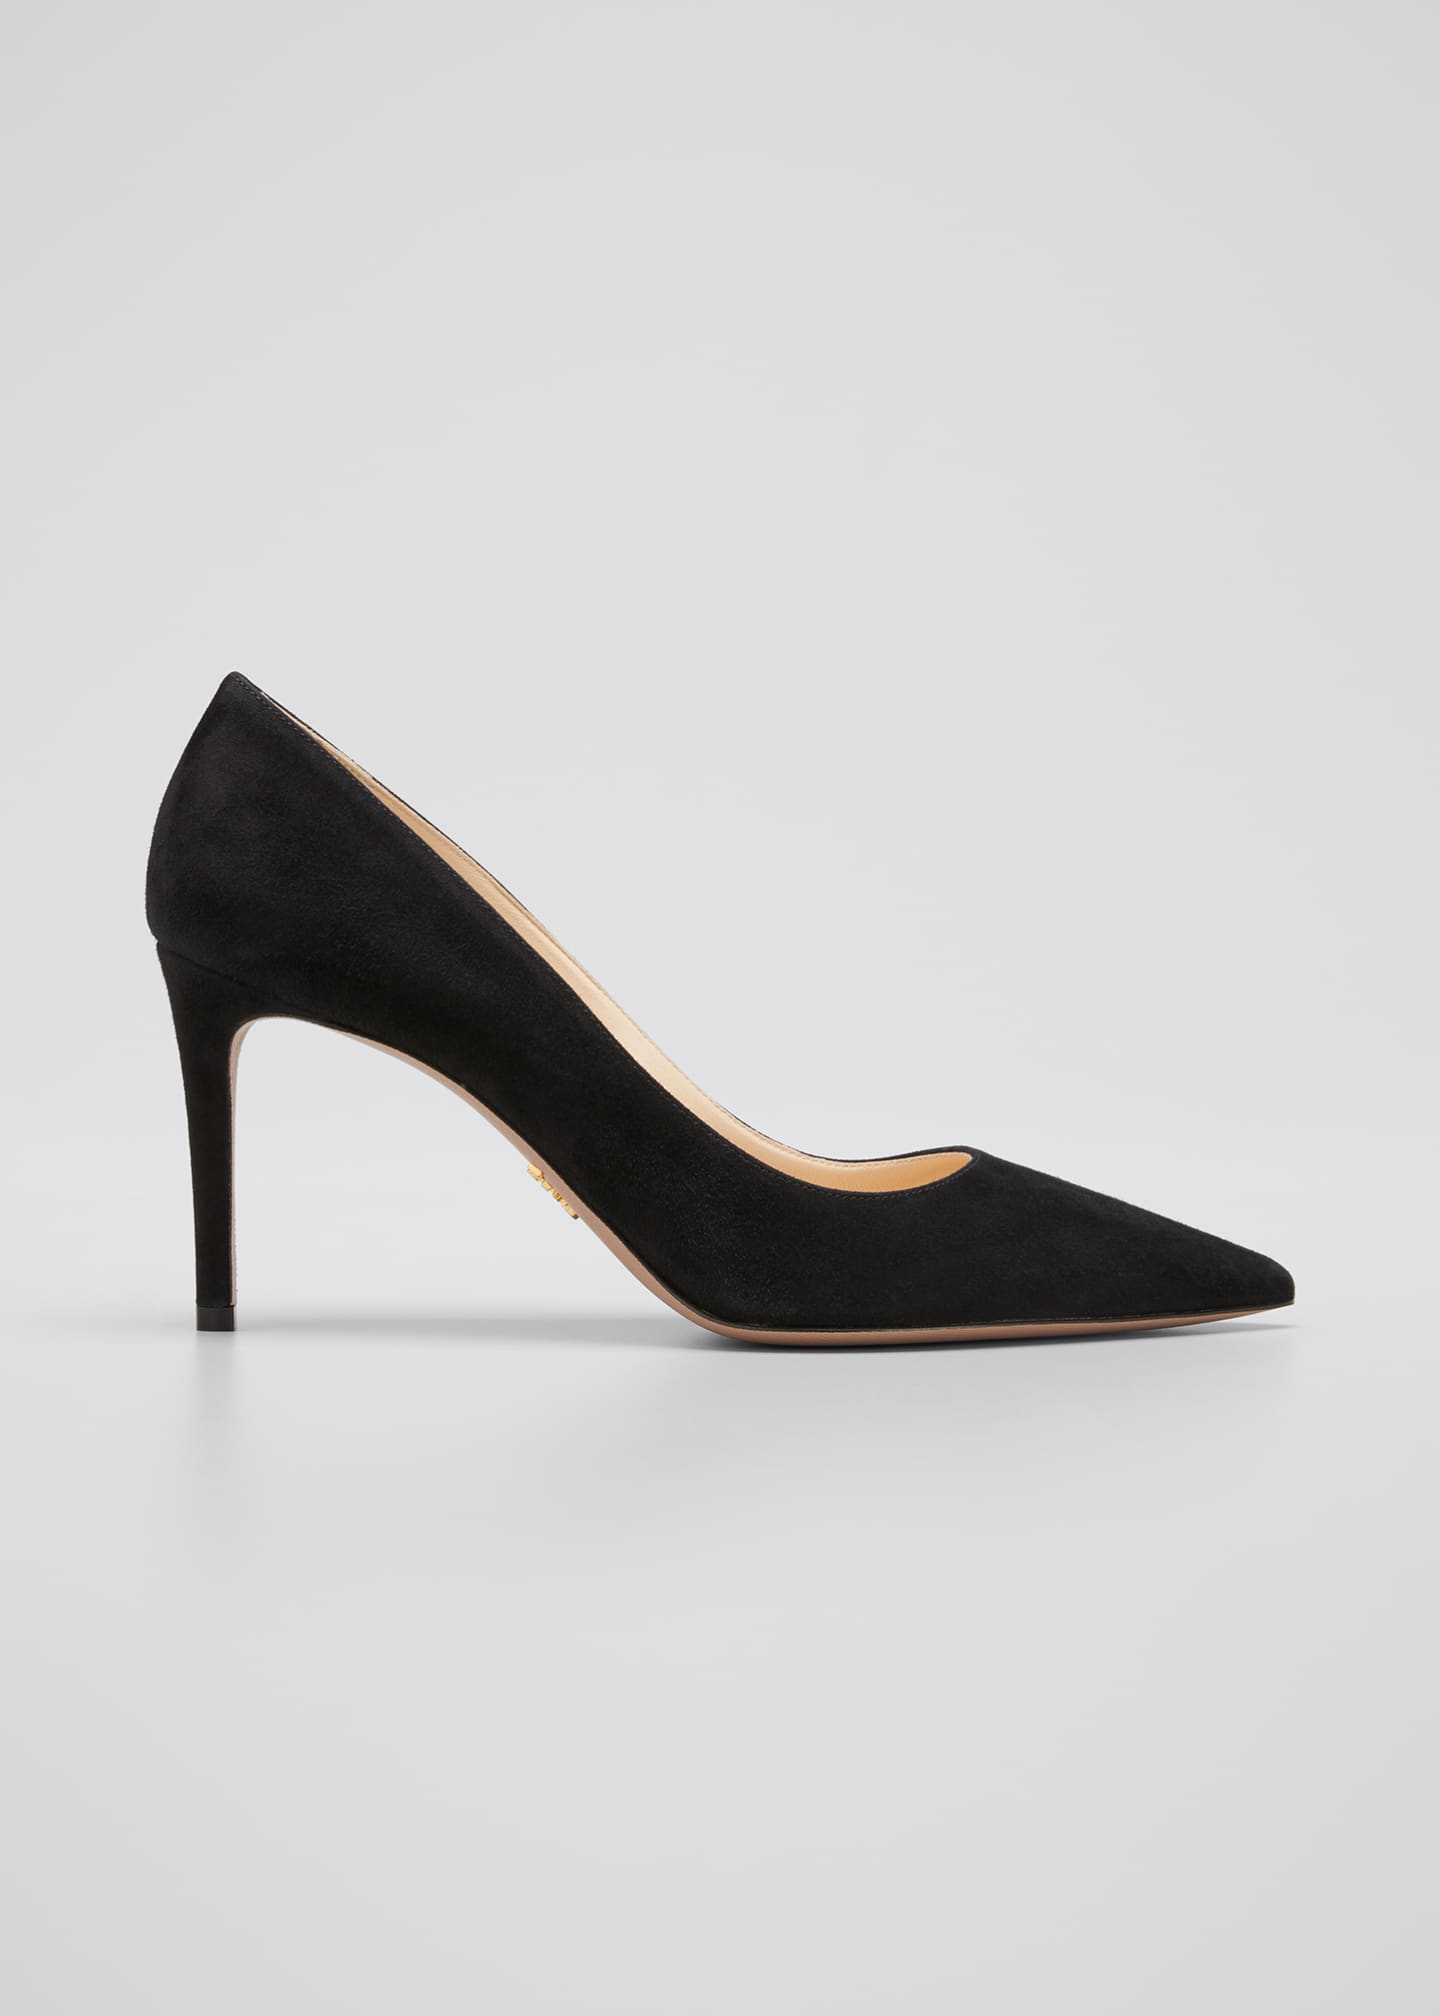 Image 1 of 5: Suede Stiletto 85mm Pumps